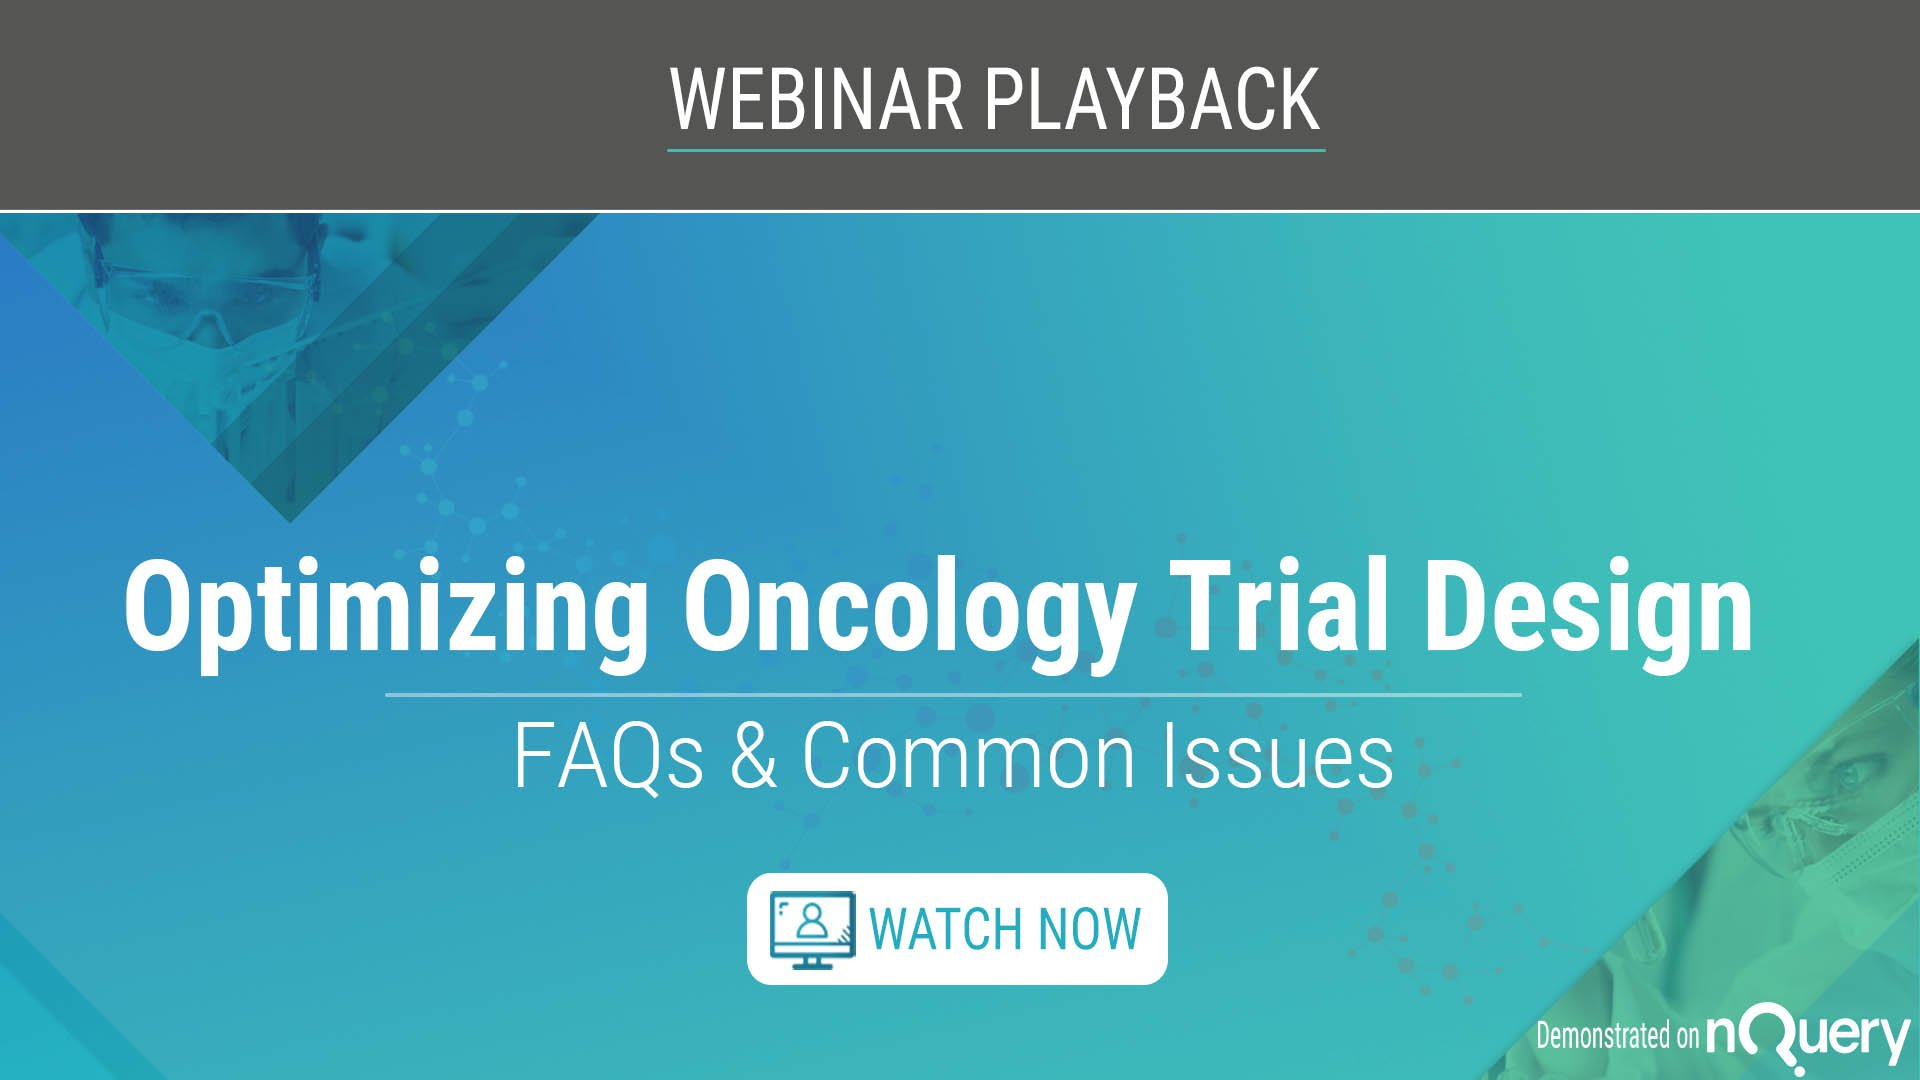 Optimizing-oncology-trial-design-playback-on-demand-1920-1080